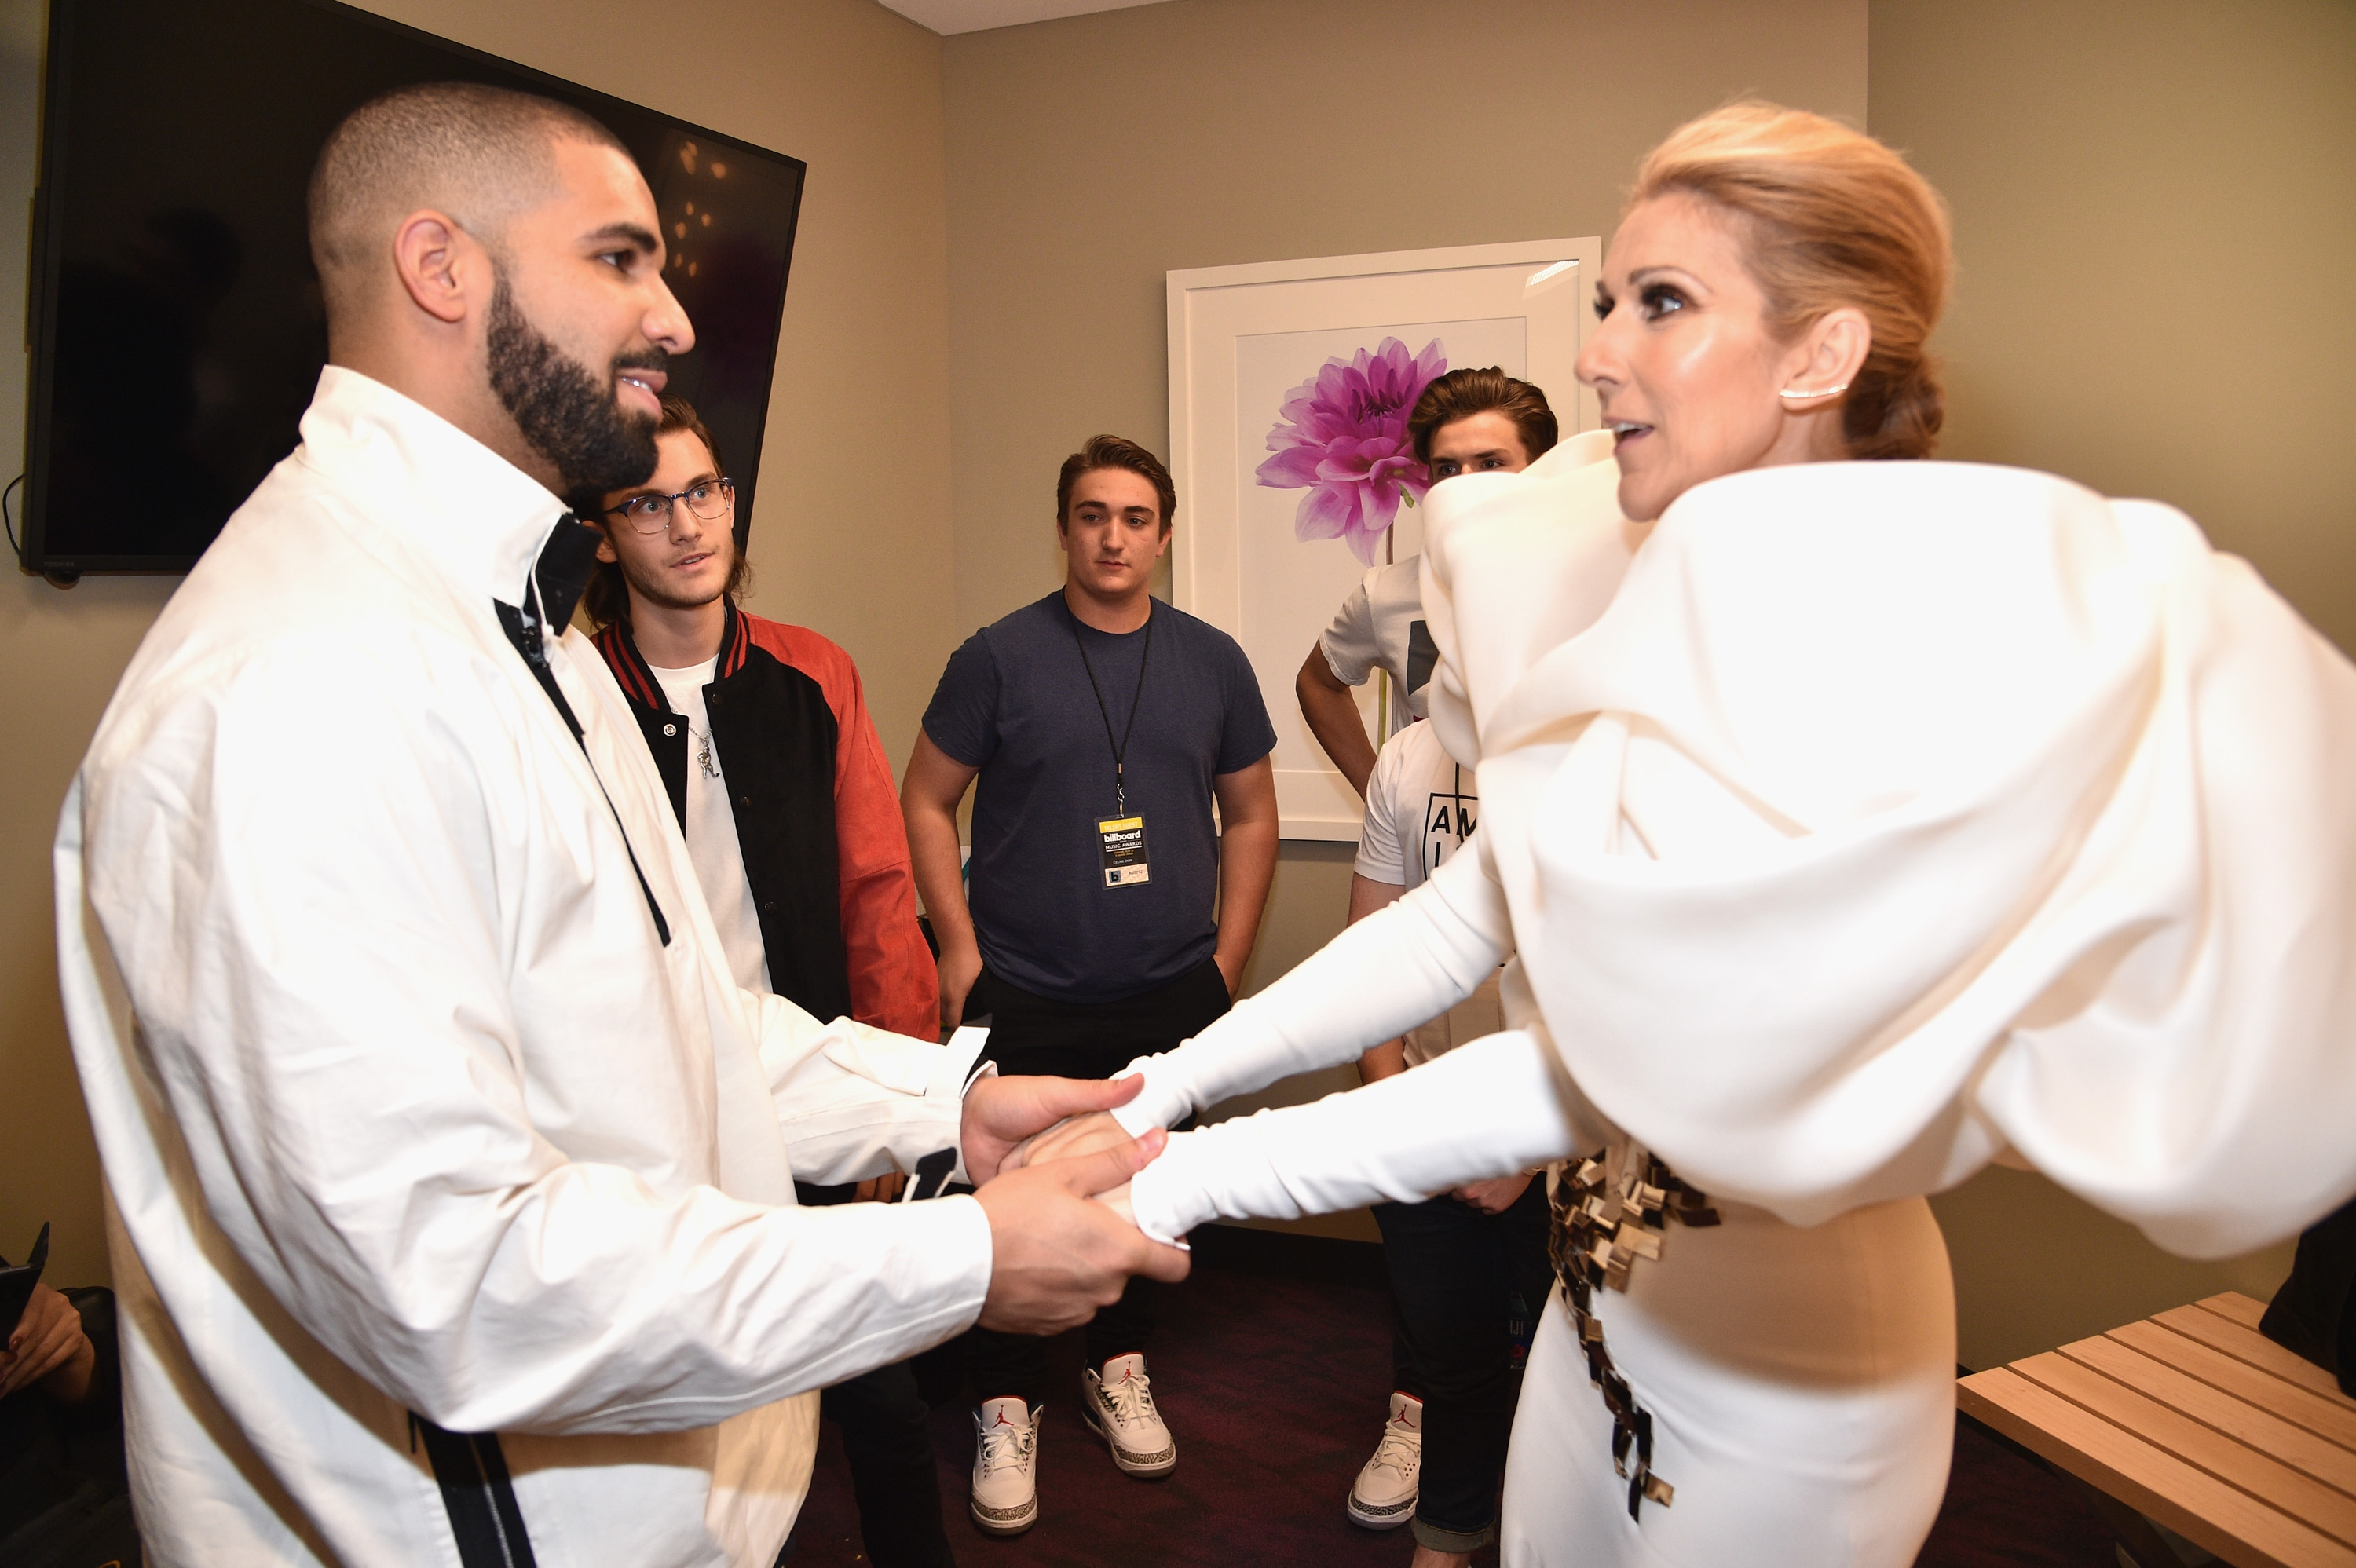 Here's how Céline Dion responded when Drake said he wants a tattoo of her face